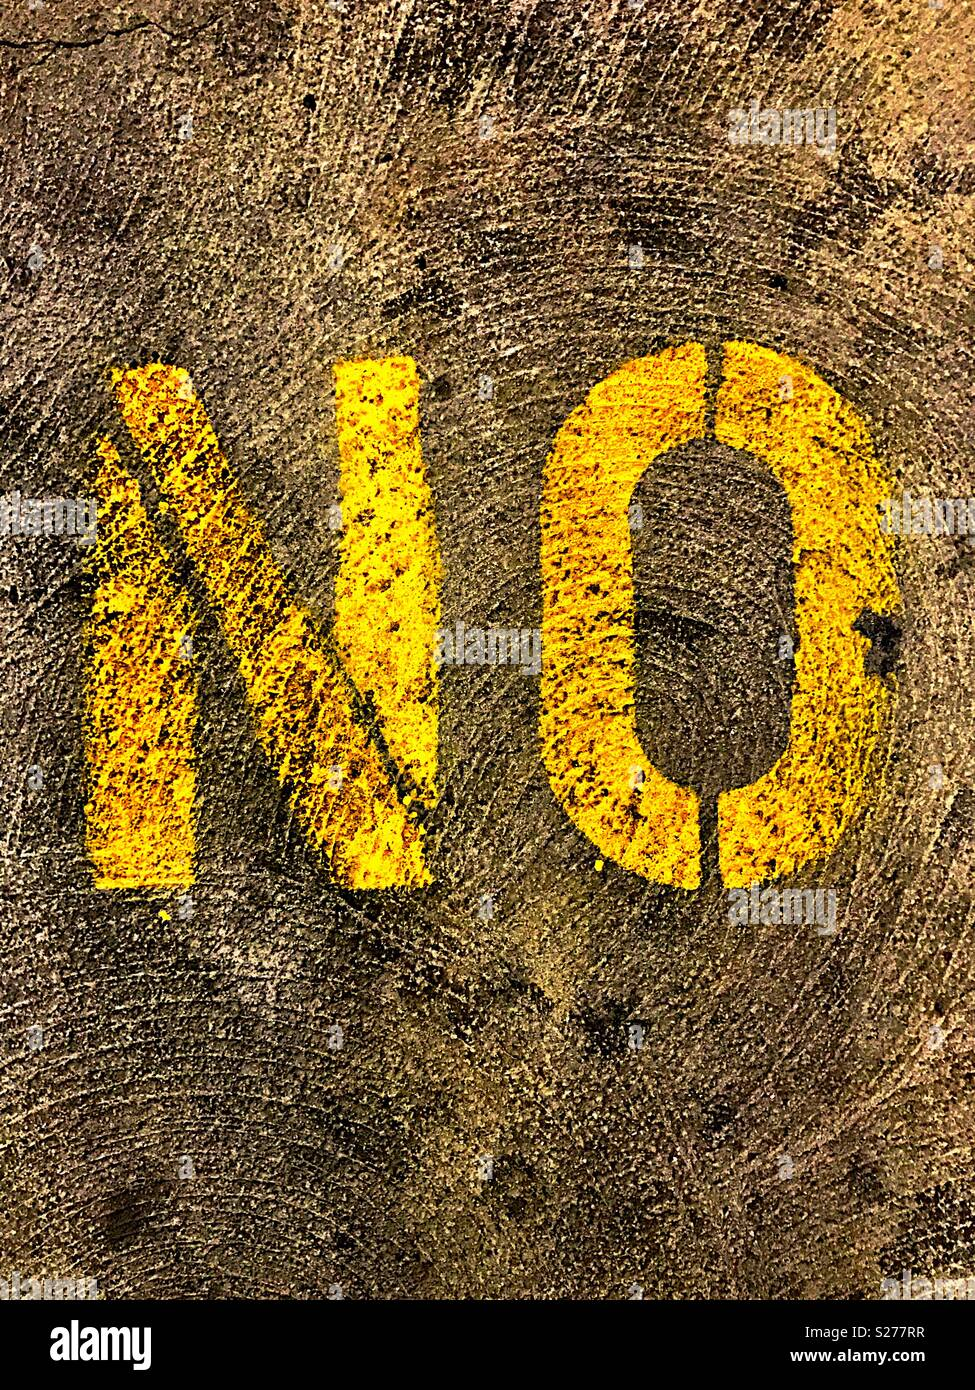 No in yellow, capital letters - Stock Image